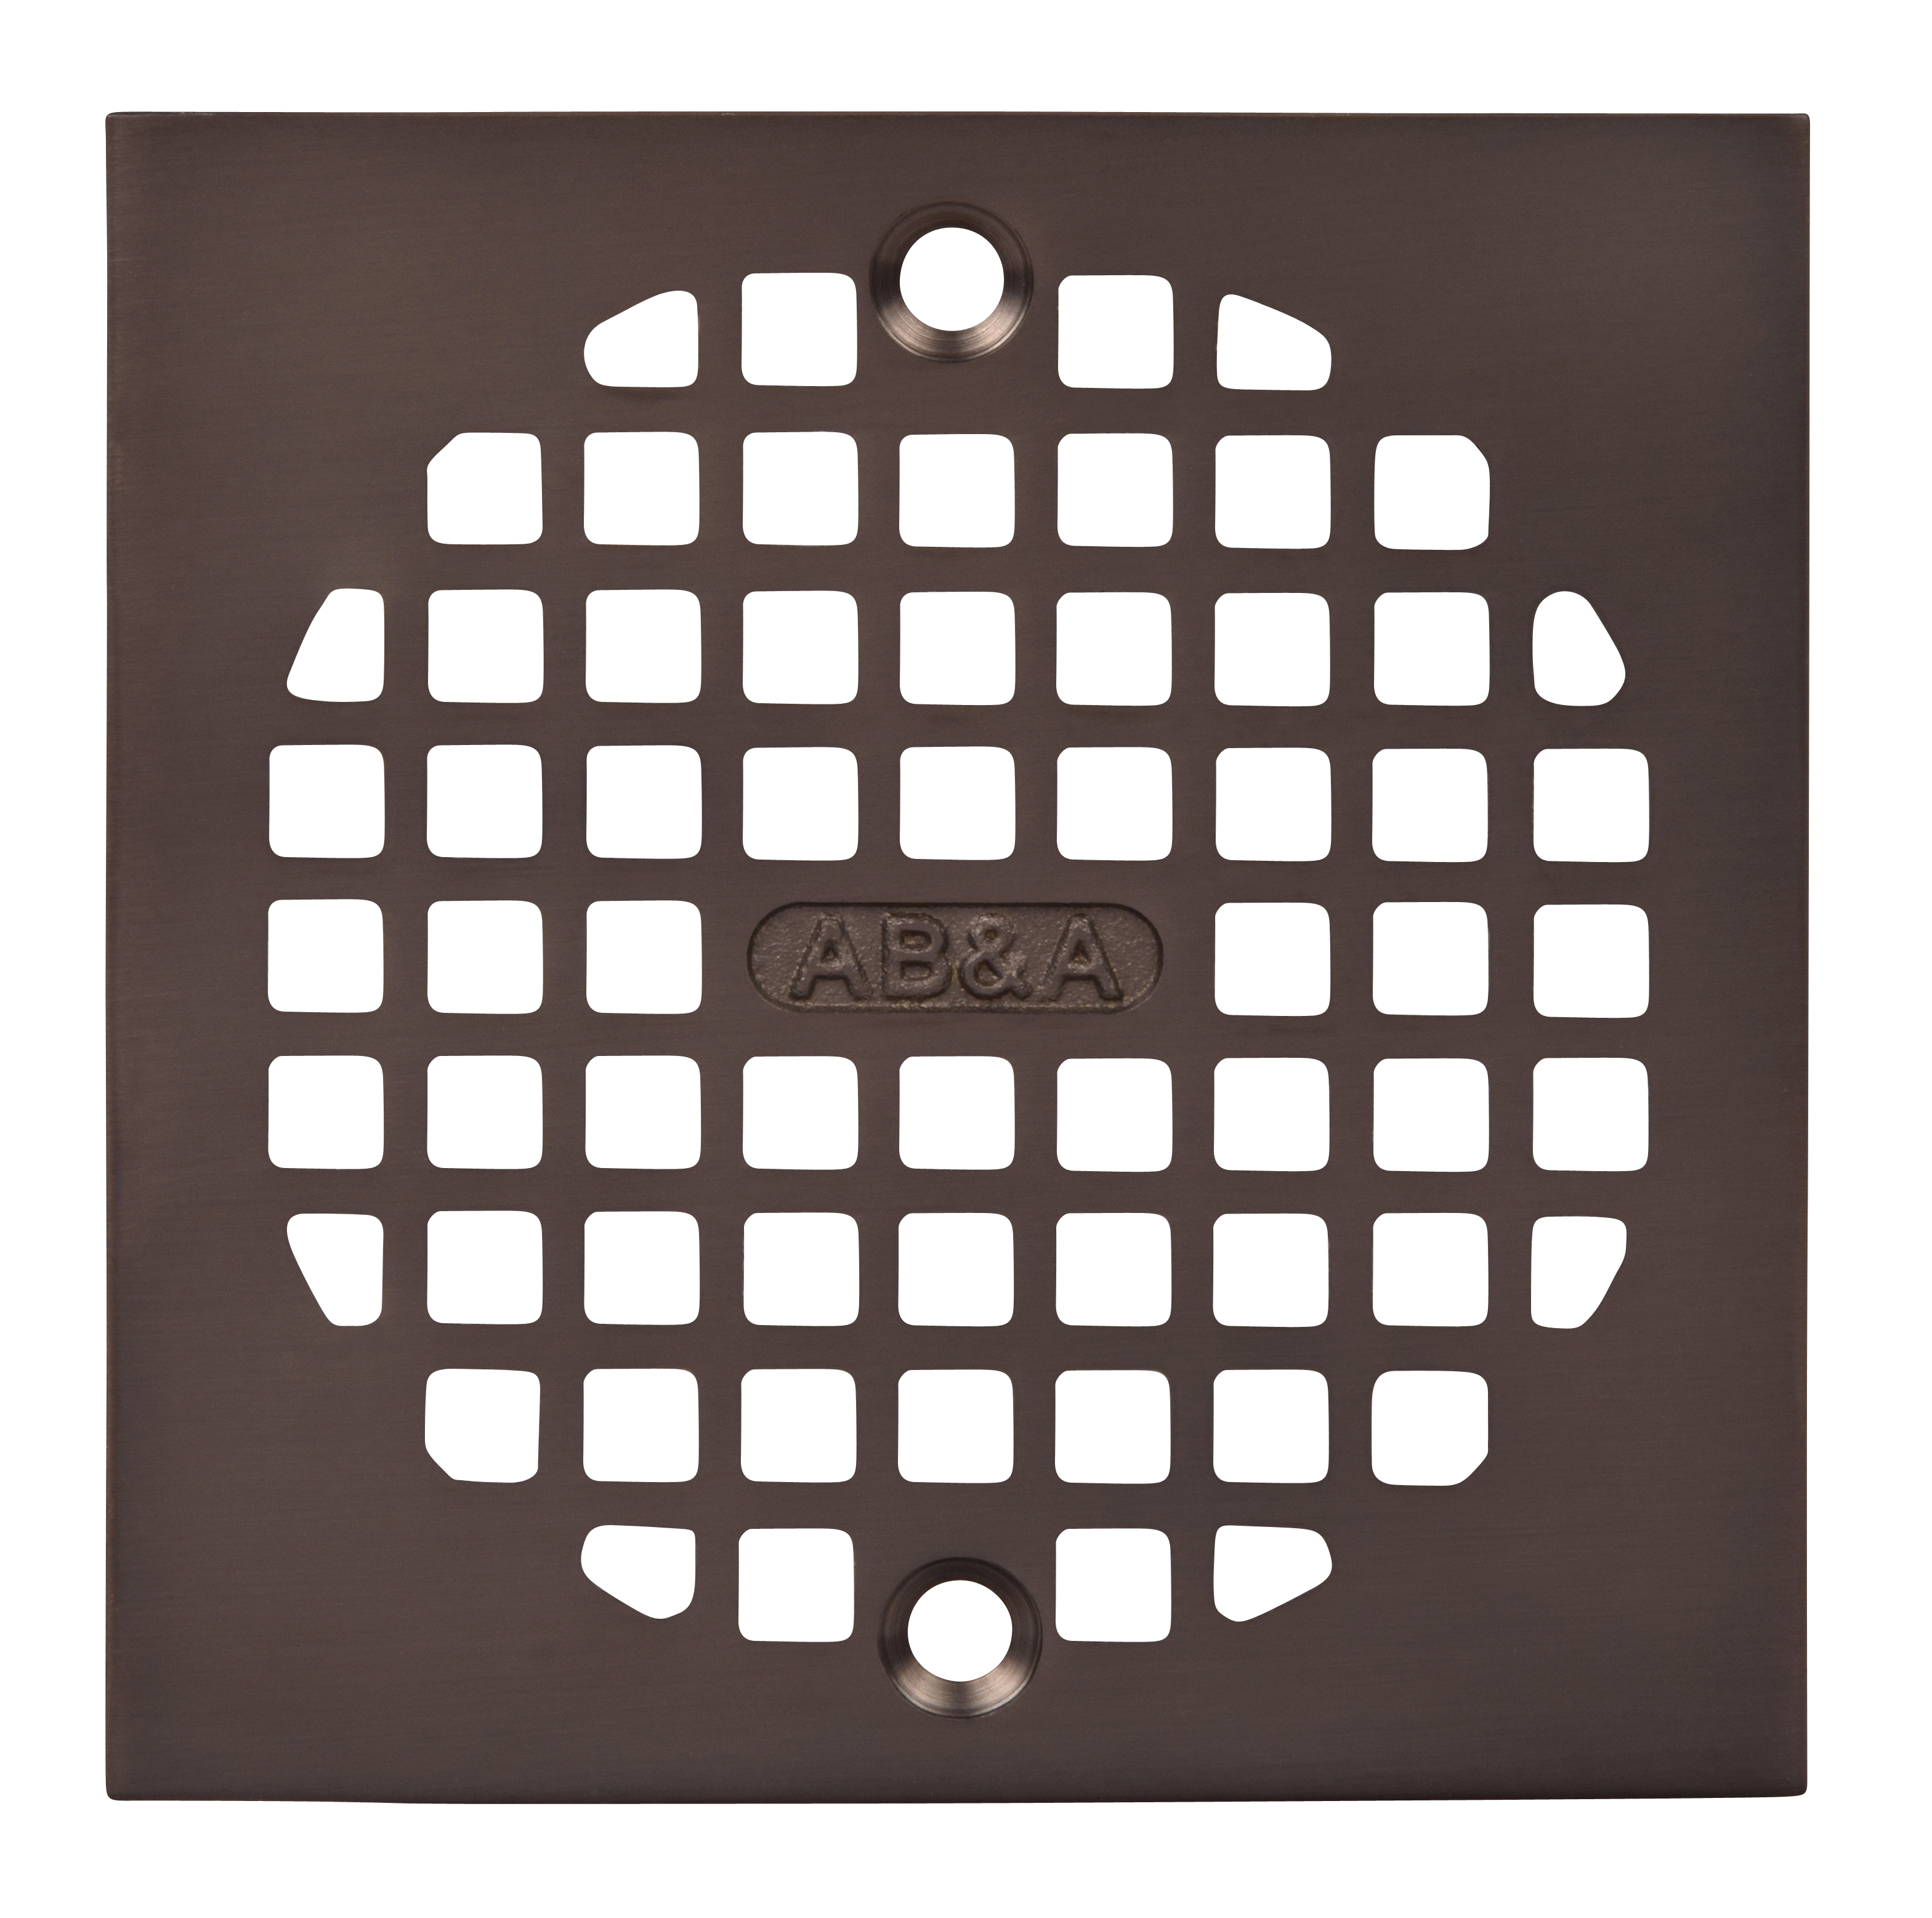 AB&A Grate Cast Brass Sq 4 1/4 ORB, Square Grate